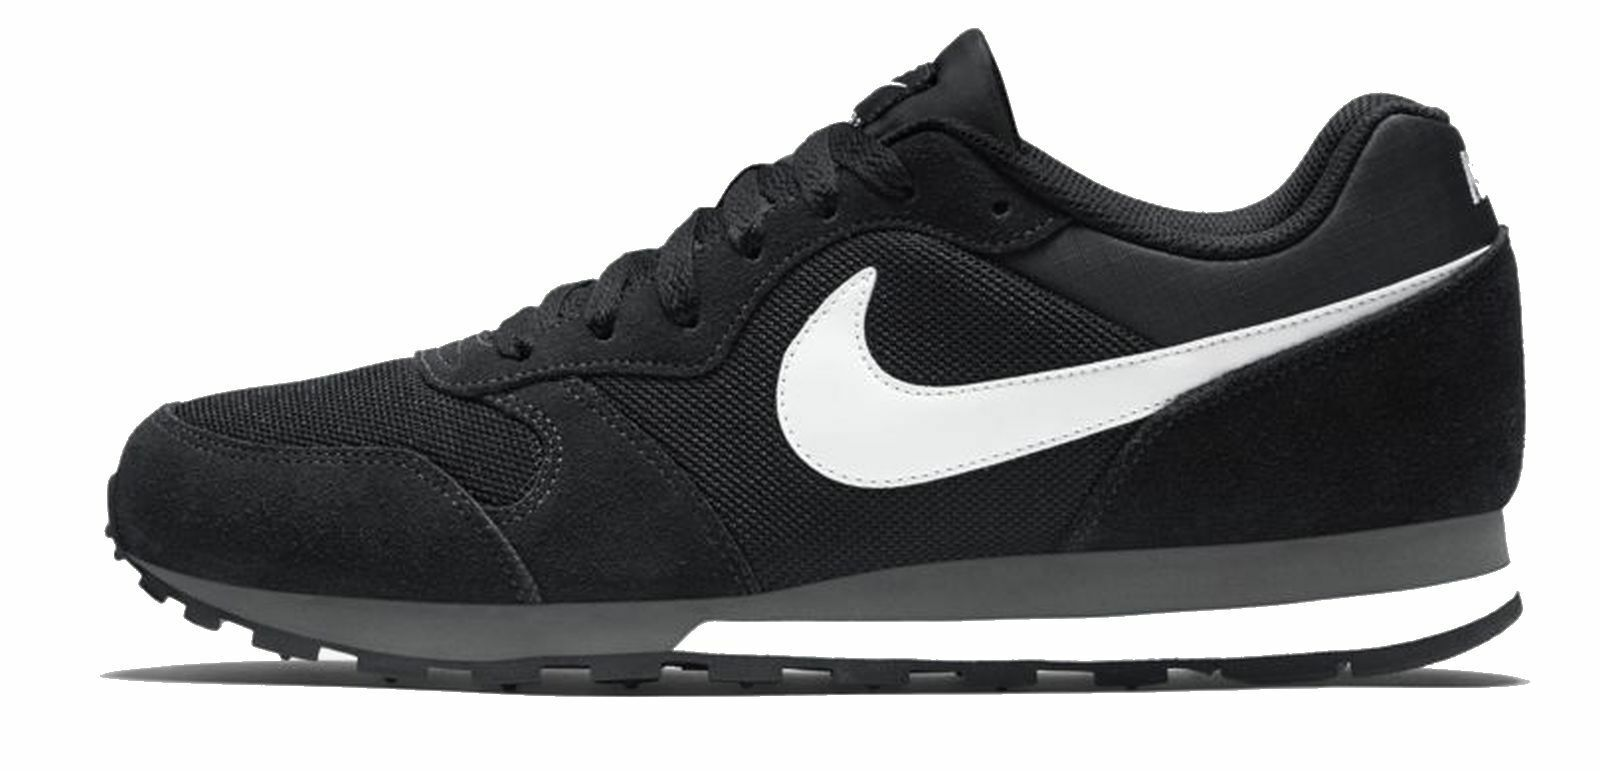 Nike Men's Sport Sport Sport shoes Leisure shoes Nike Md Runner 2 Black White 98ce7c